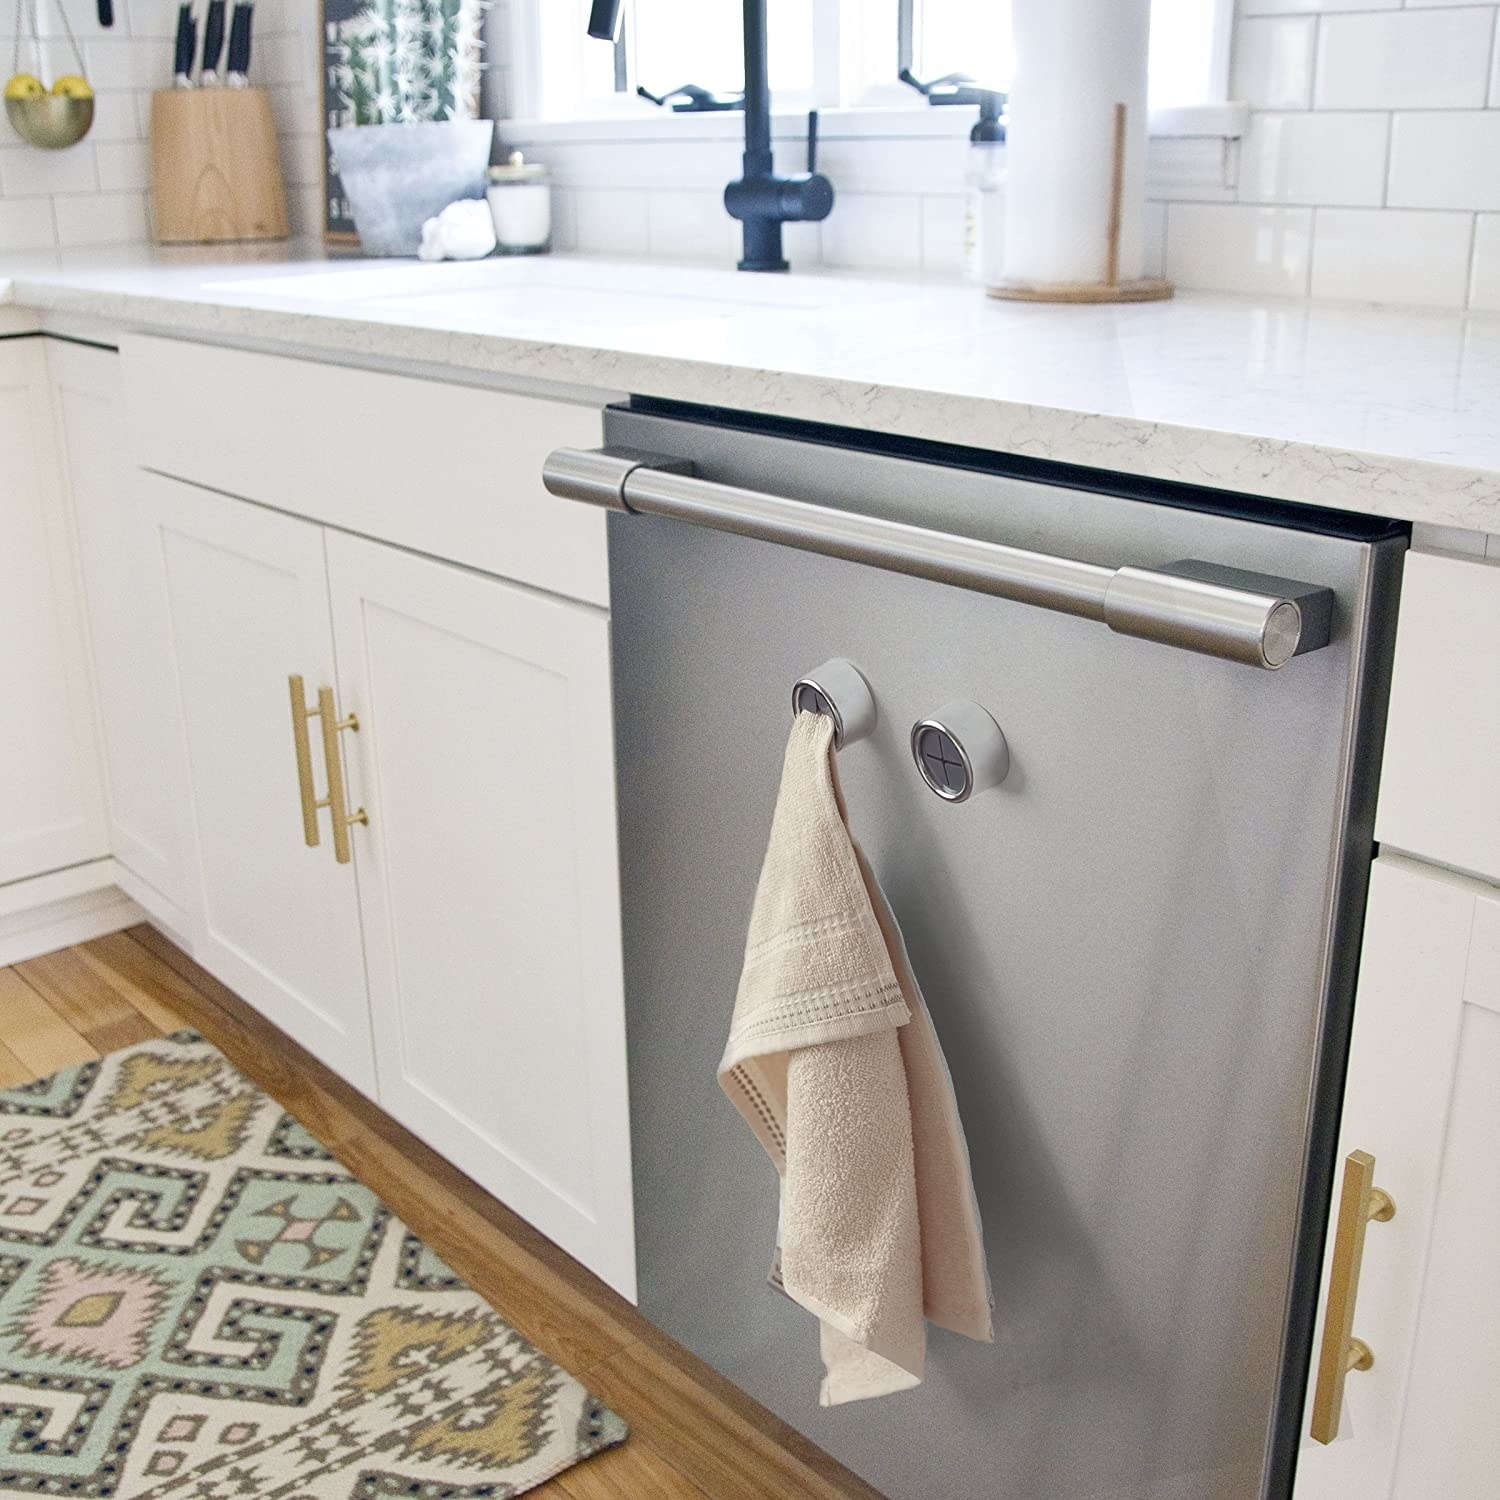 Towel hooks attached to a washing machine